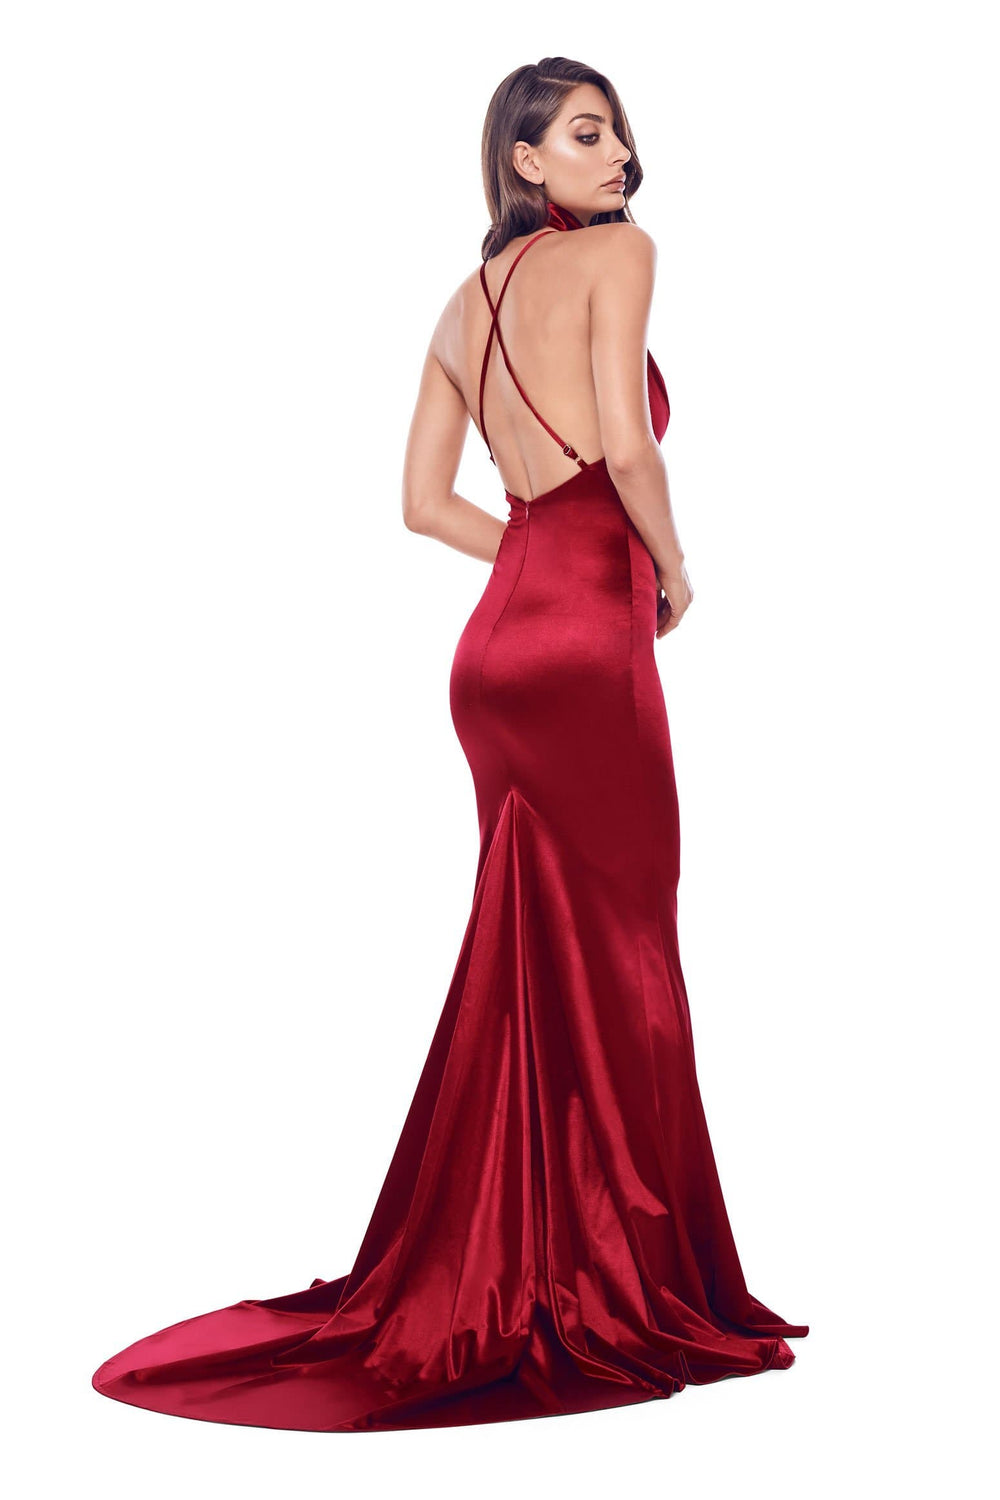 Amina - Wine Red Satin Gown with V-Neckline, Low Back & Mermaid Train